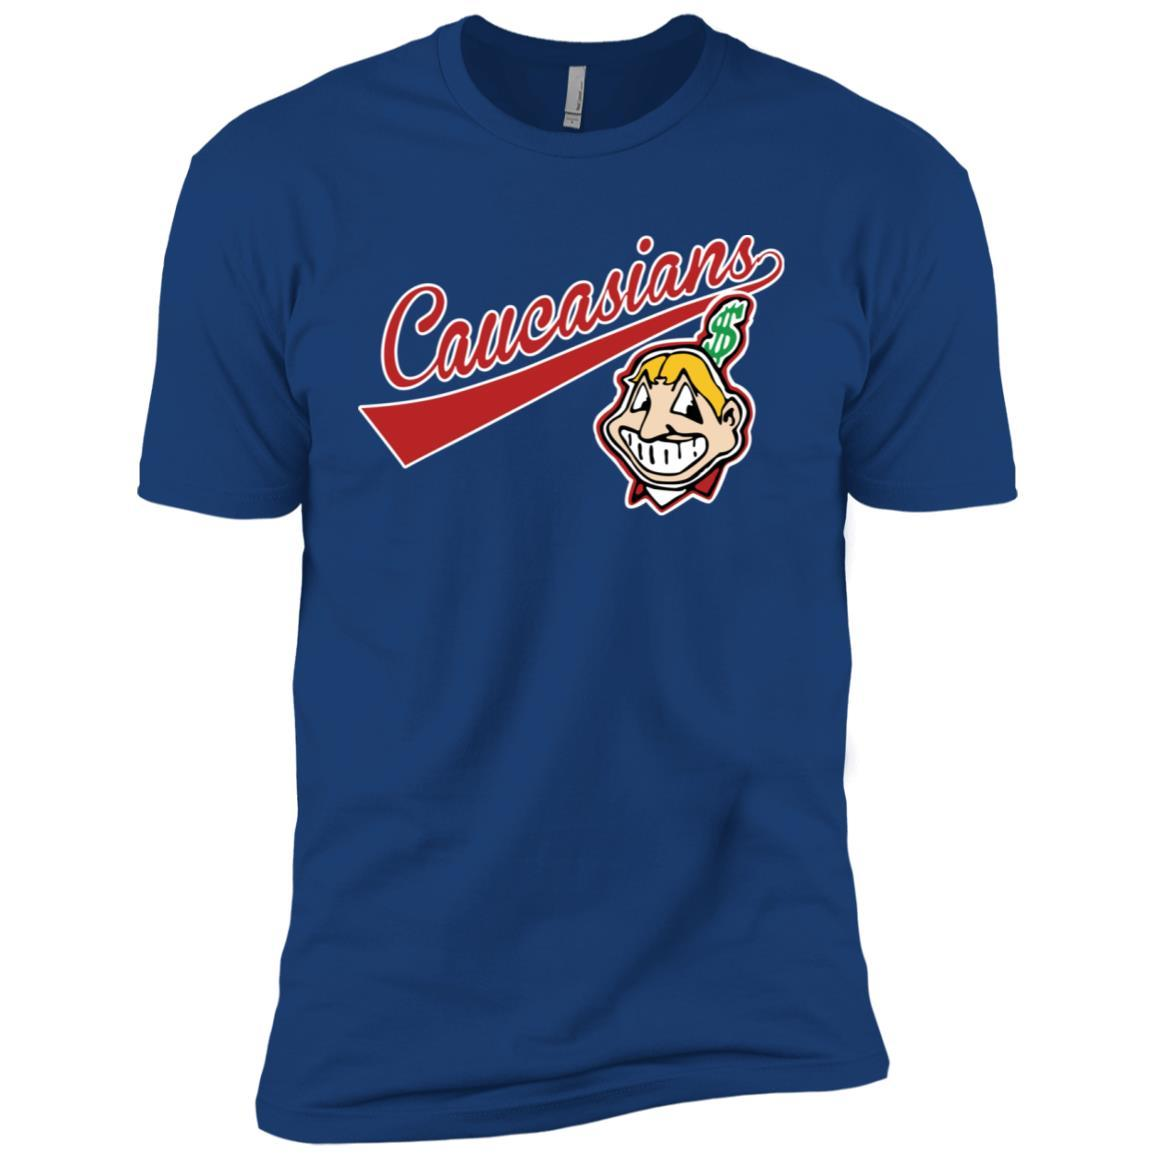 Cleveland Caucasians Native Go Indians - Short Sleeve T-Shirt Royal / 4XL